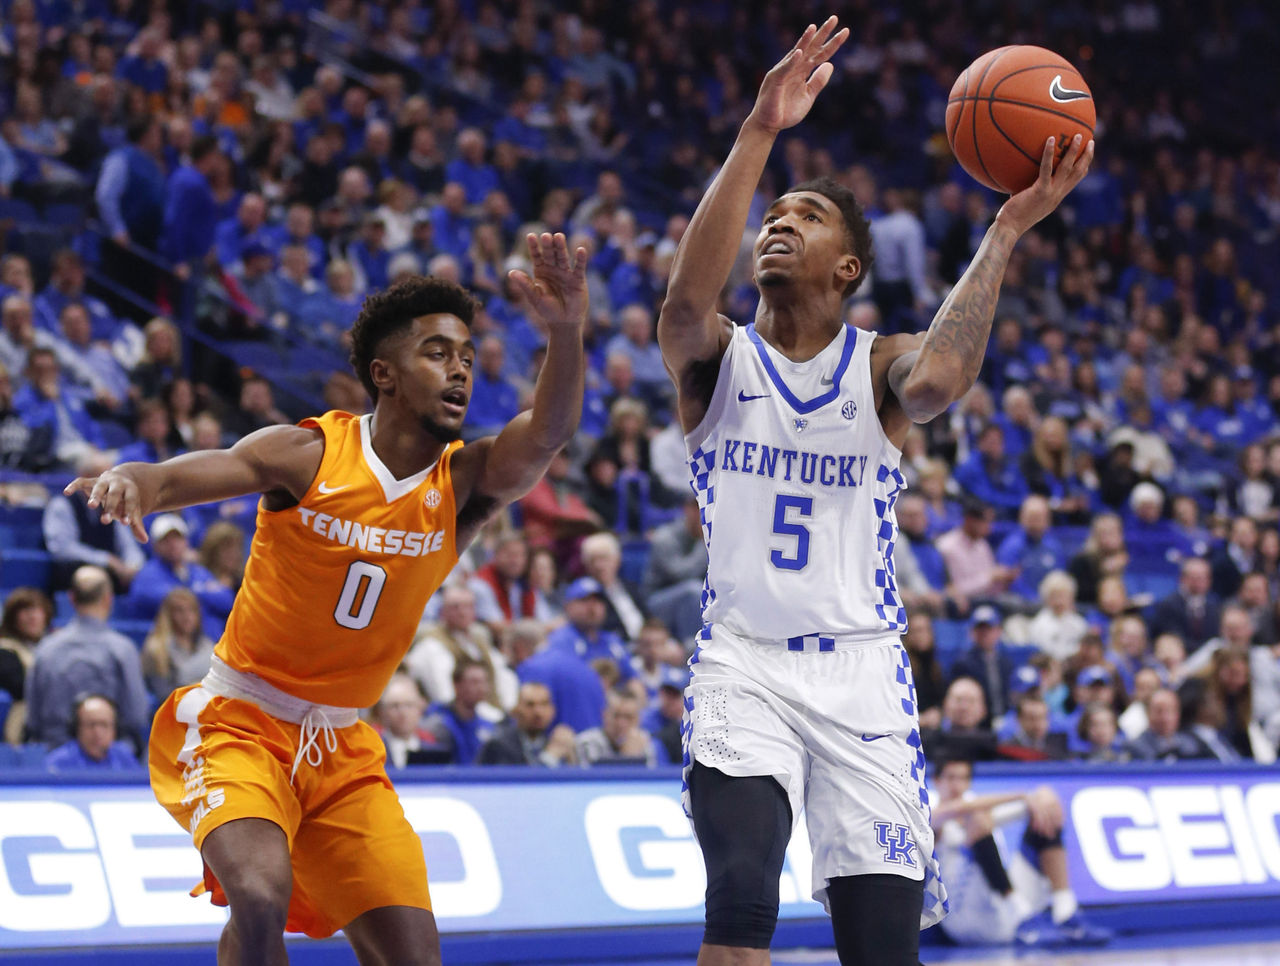 Cropped_2017-02-15t004618z_1111555026_nocid_rtrmadp_3_ncaa-basketball-tennessee-at-kentucky